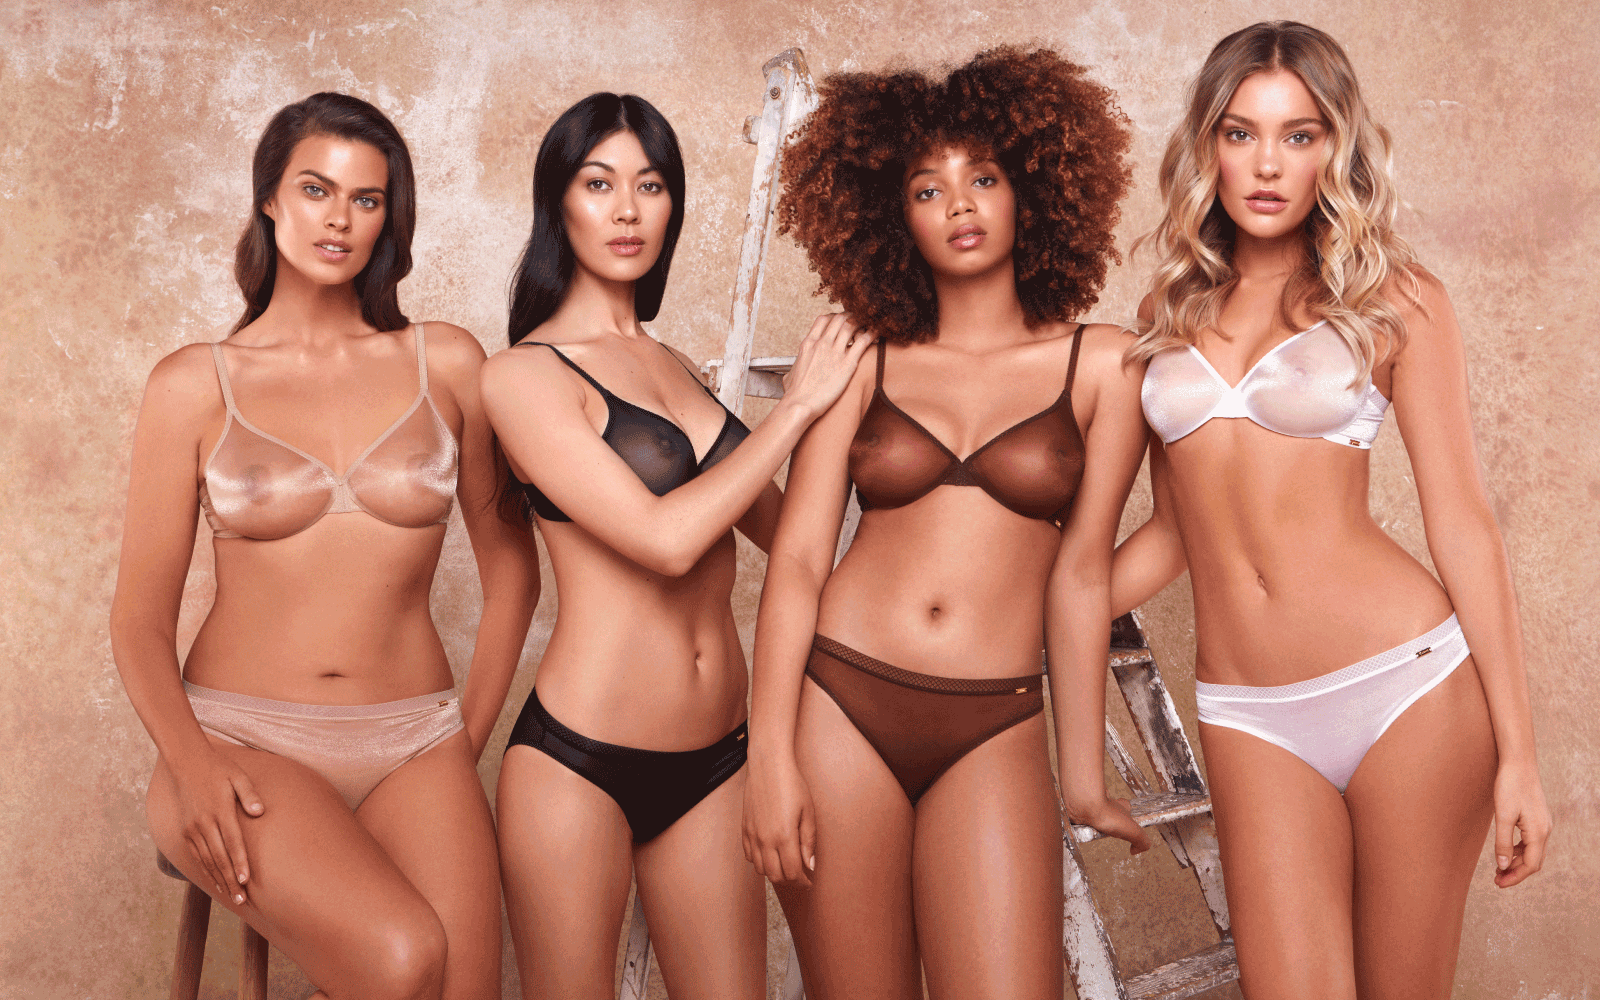 Glossies by Gossard